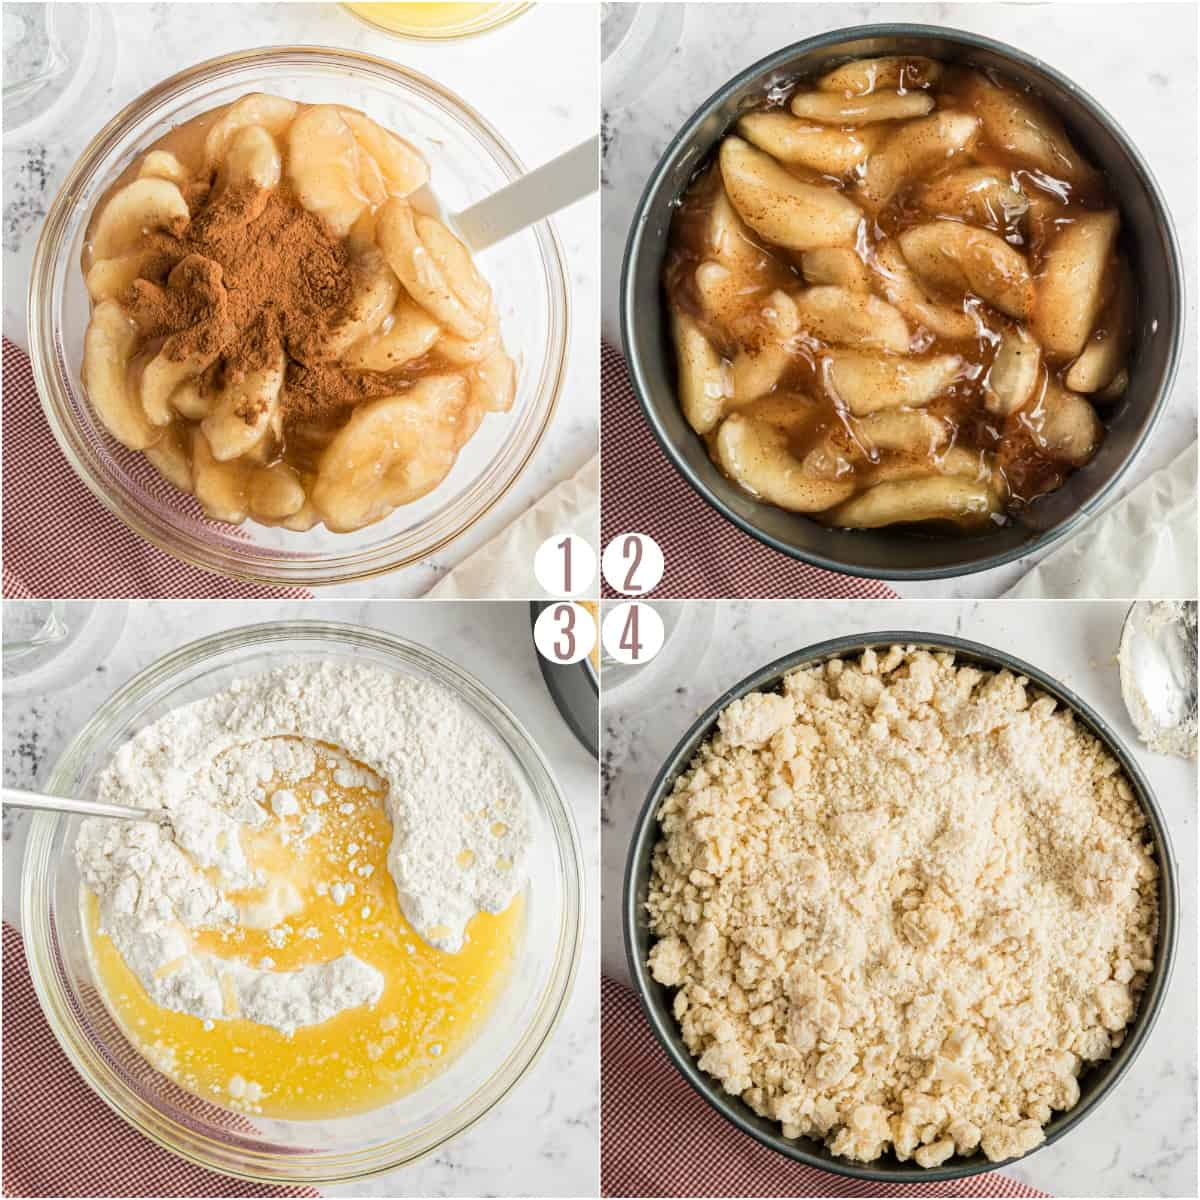 Step by step photos showing how to make apple cobbler in the pressure cooker.